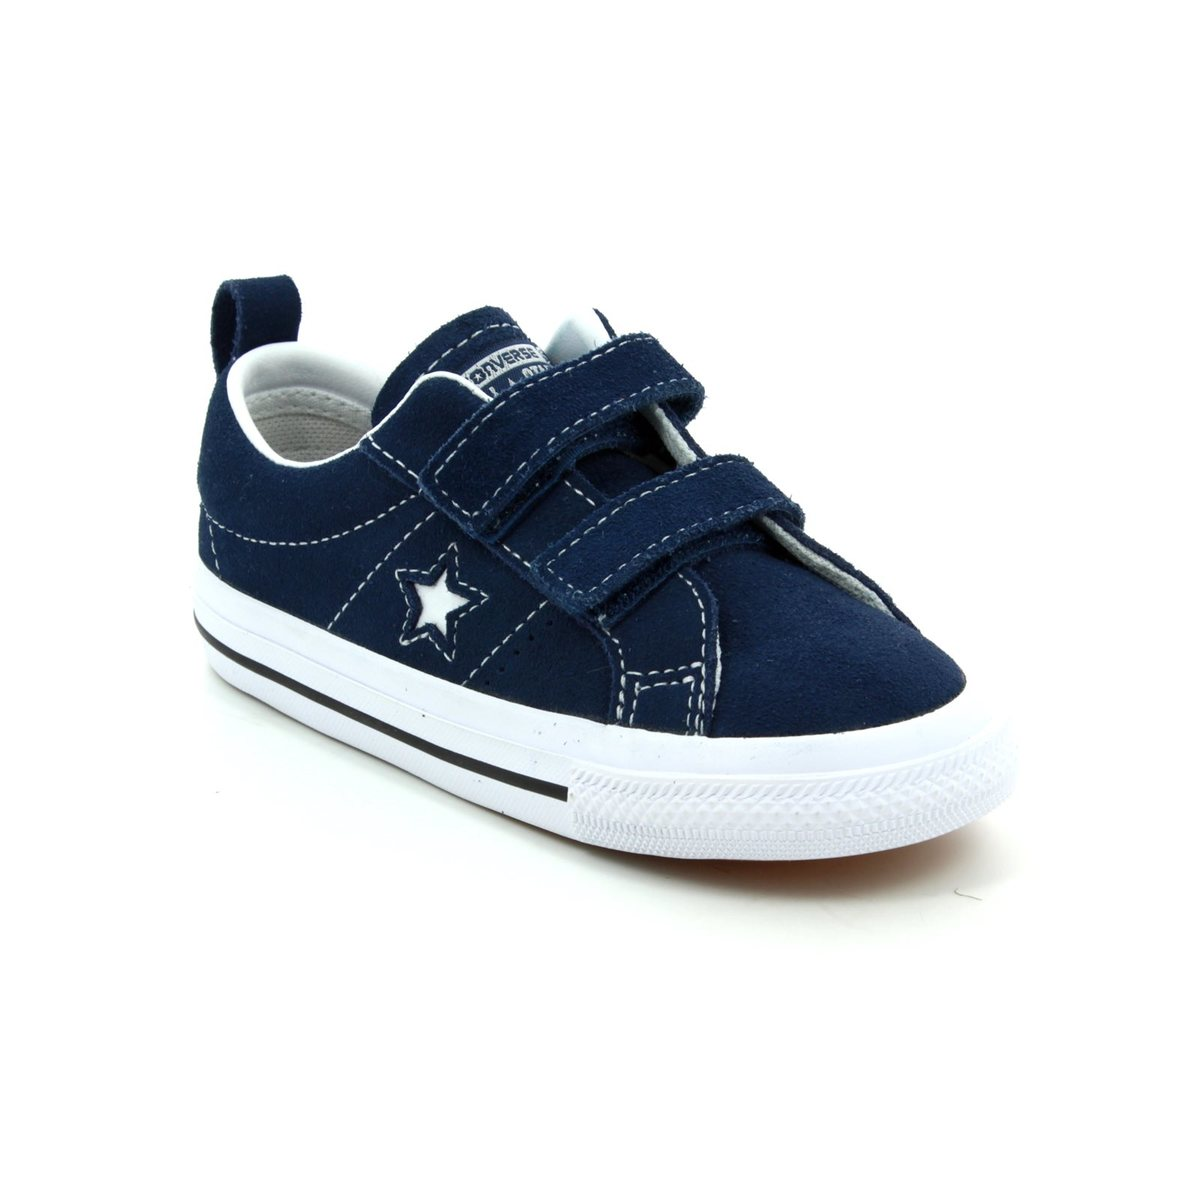 0c7f5b2bc76f Converse Trainers - Navy multi - 756132C 410 One Star 2V OX Velcro